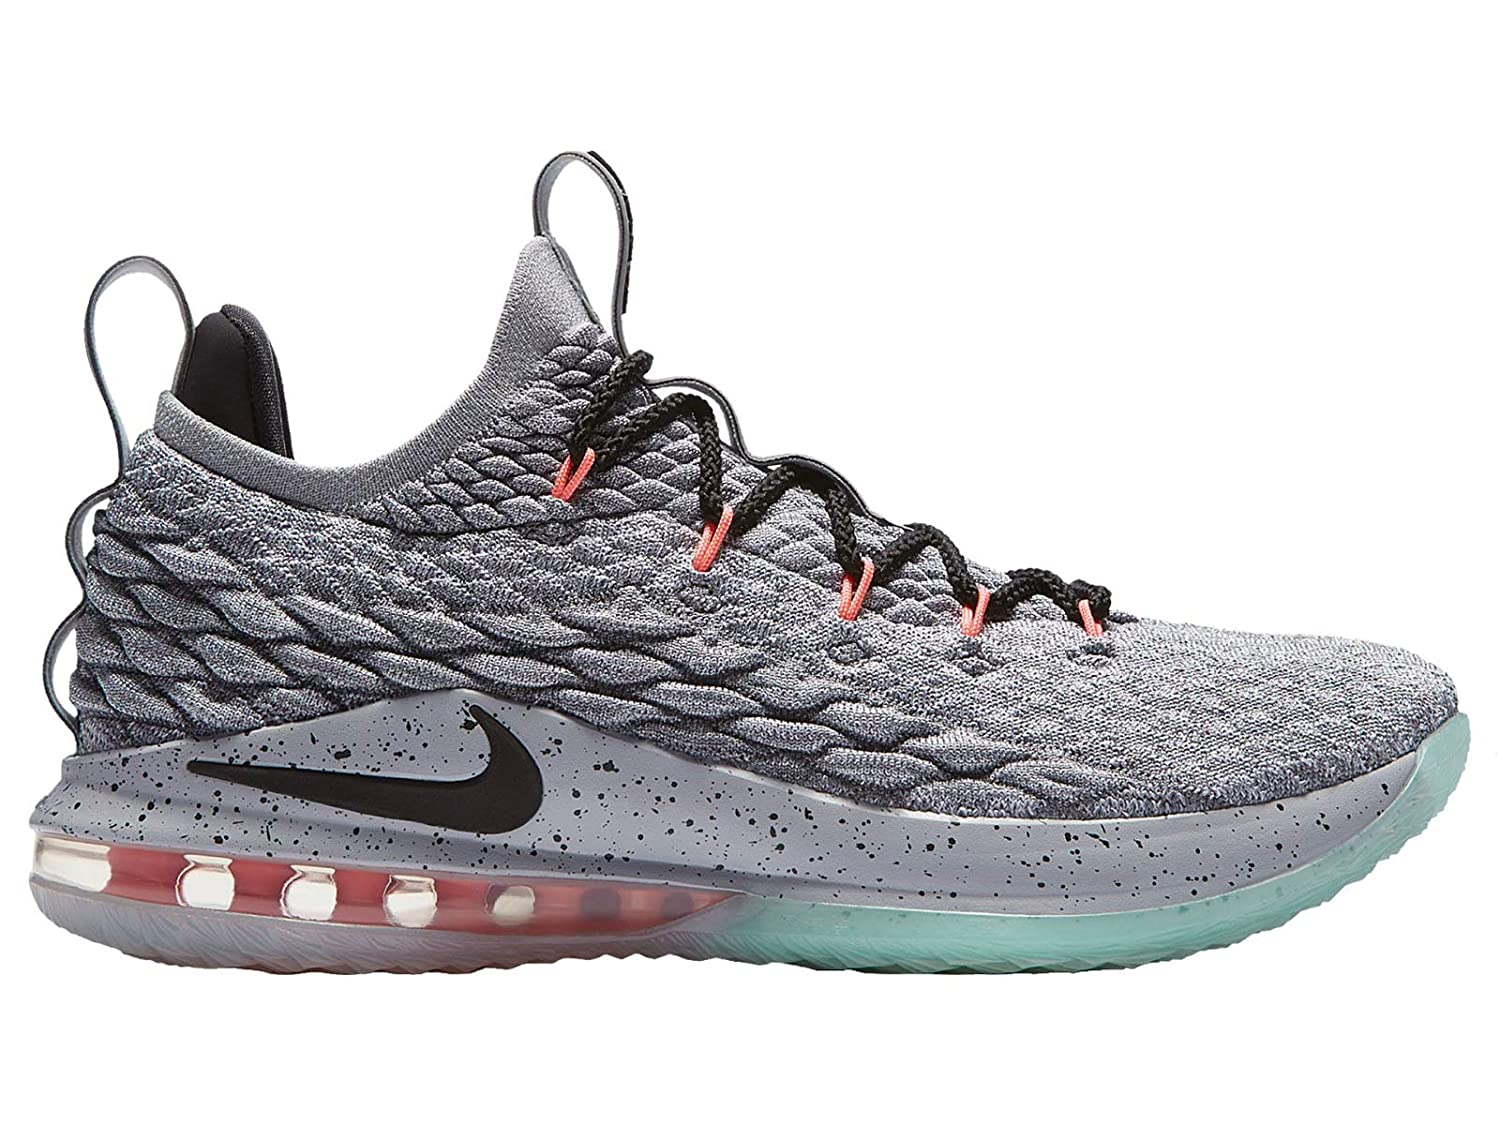 outlet store f47d8 3f1a7 NIKE Lebron 15 Low - Men's Lebron James Nylon Basketball Shoes 10 D(M) US